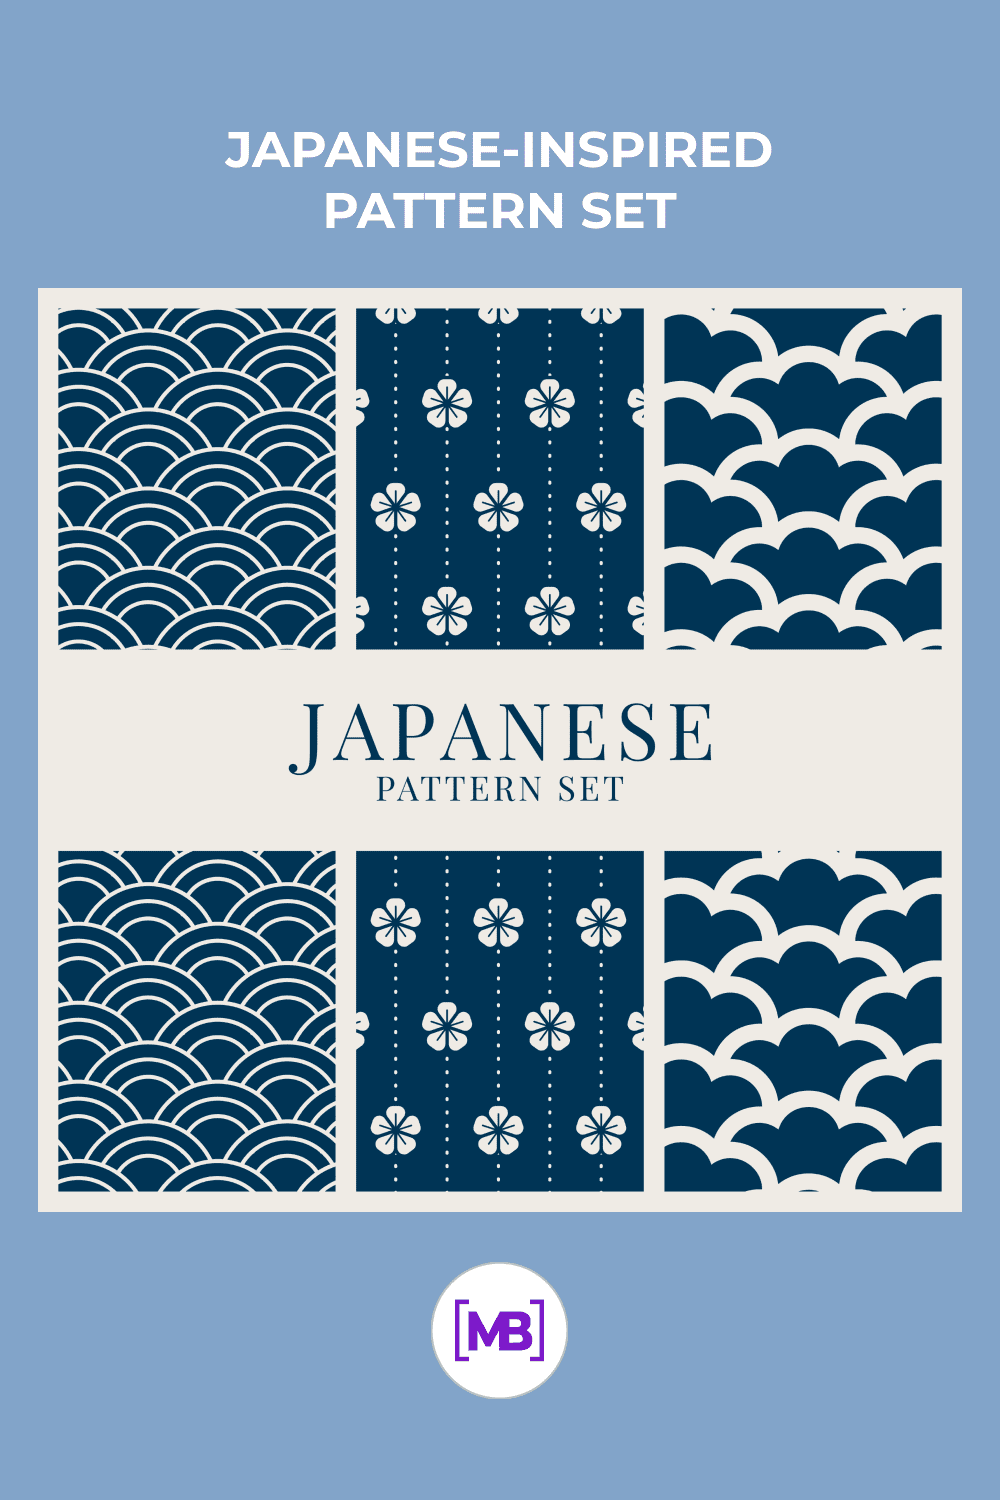 Japanese style in blue color with beautiful ornaments.